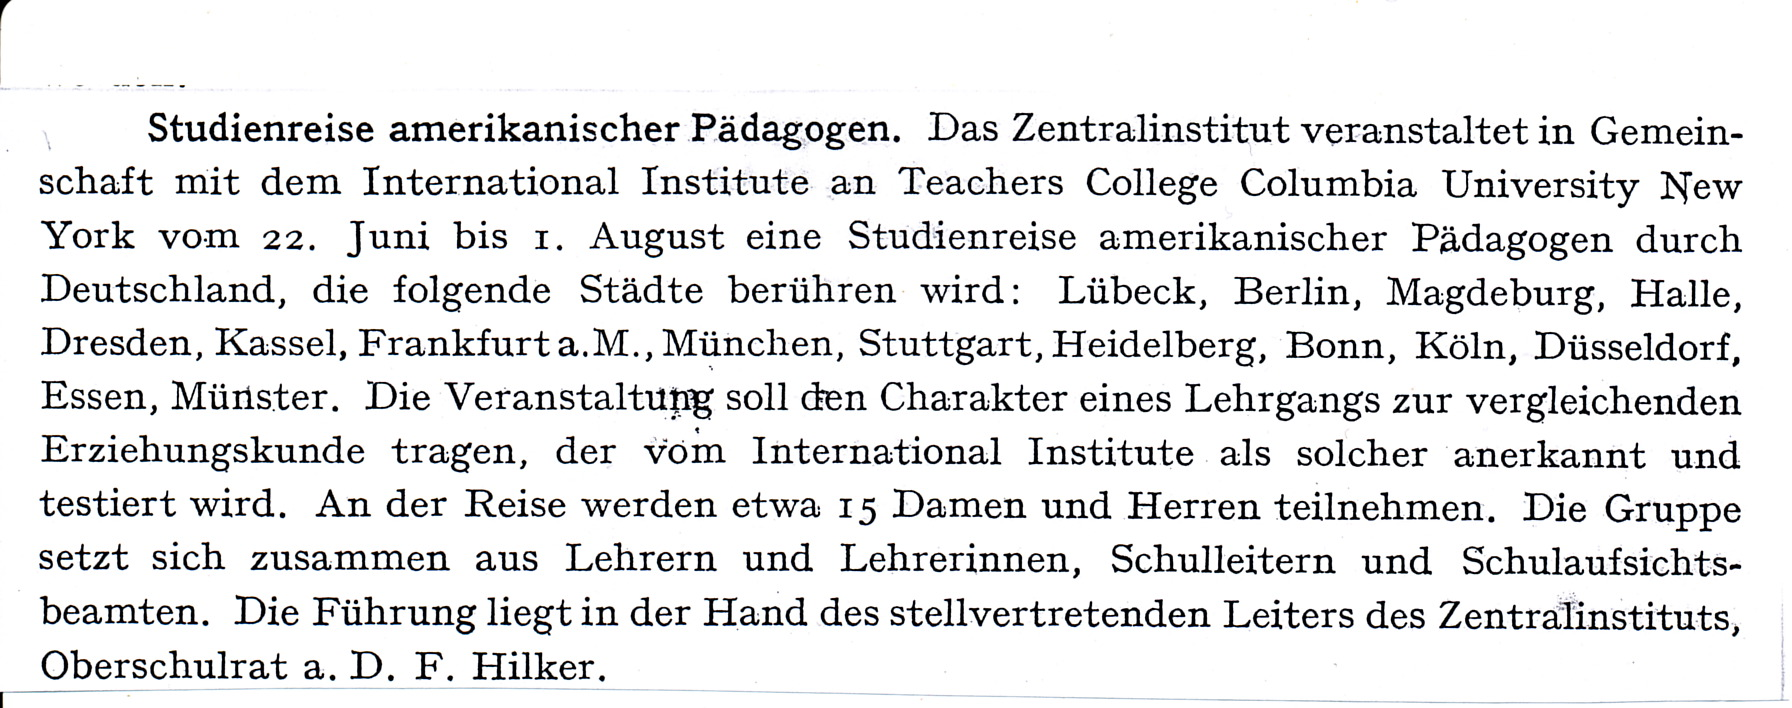 Study trip of American education specialists to Germany 1931 – Source: PZ, 11, 1931, p. 337.